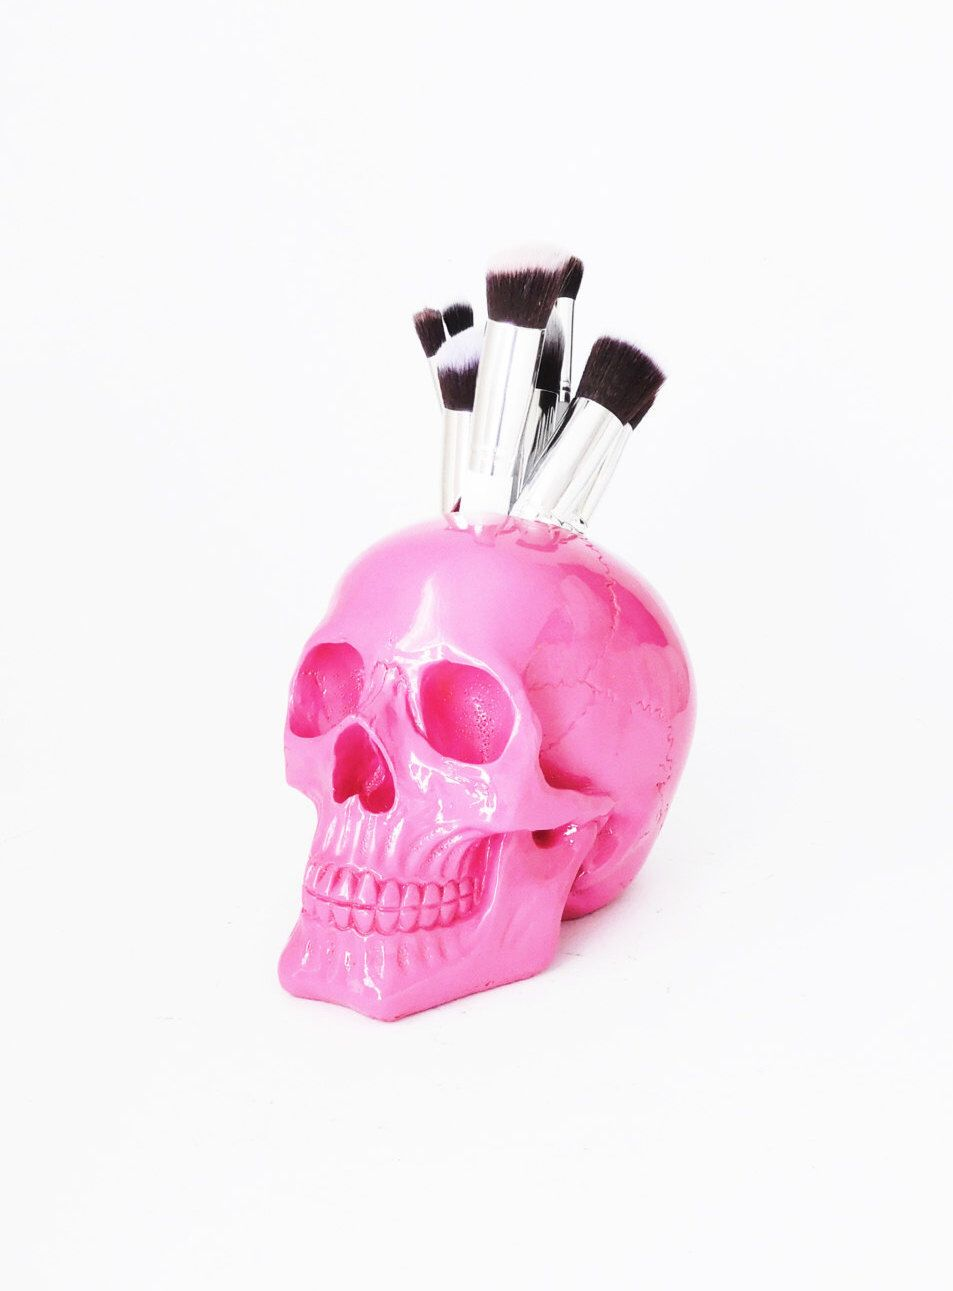 Skull Brush Holder, Skull, Makeup Brush Holder, Skull Sculpture, Skull Decor, Skull, Office Decor, Gothic, For Her, Human Skull, by hodihomedecor on Etsy https://www.etsy.com/listing/269849167/skull-brush-holder-skull-makeup-brush